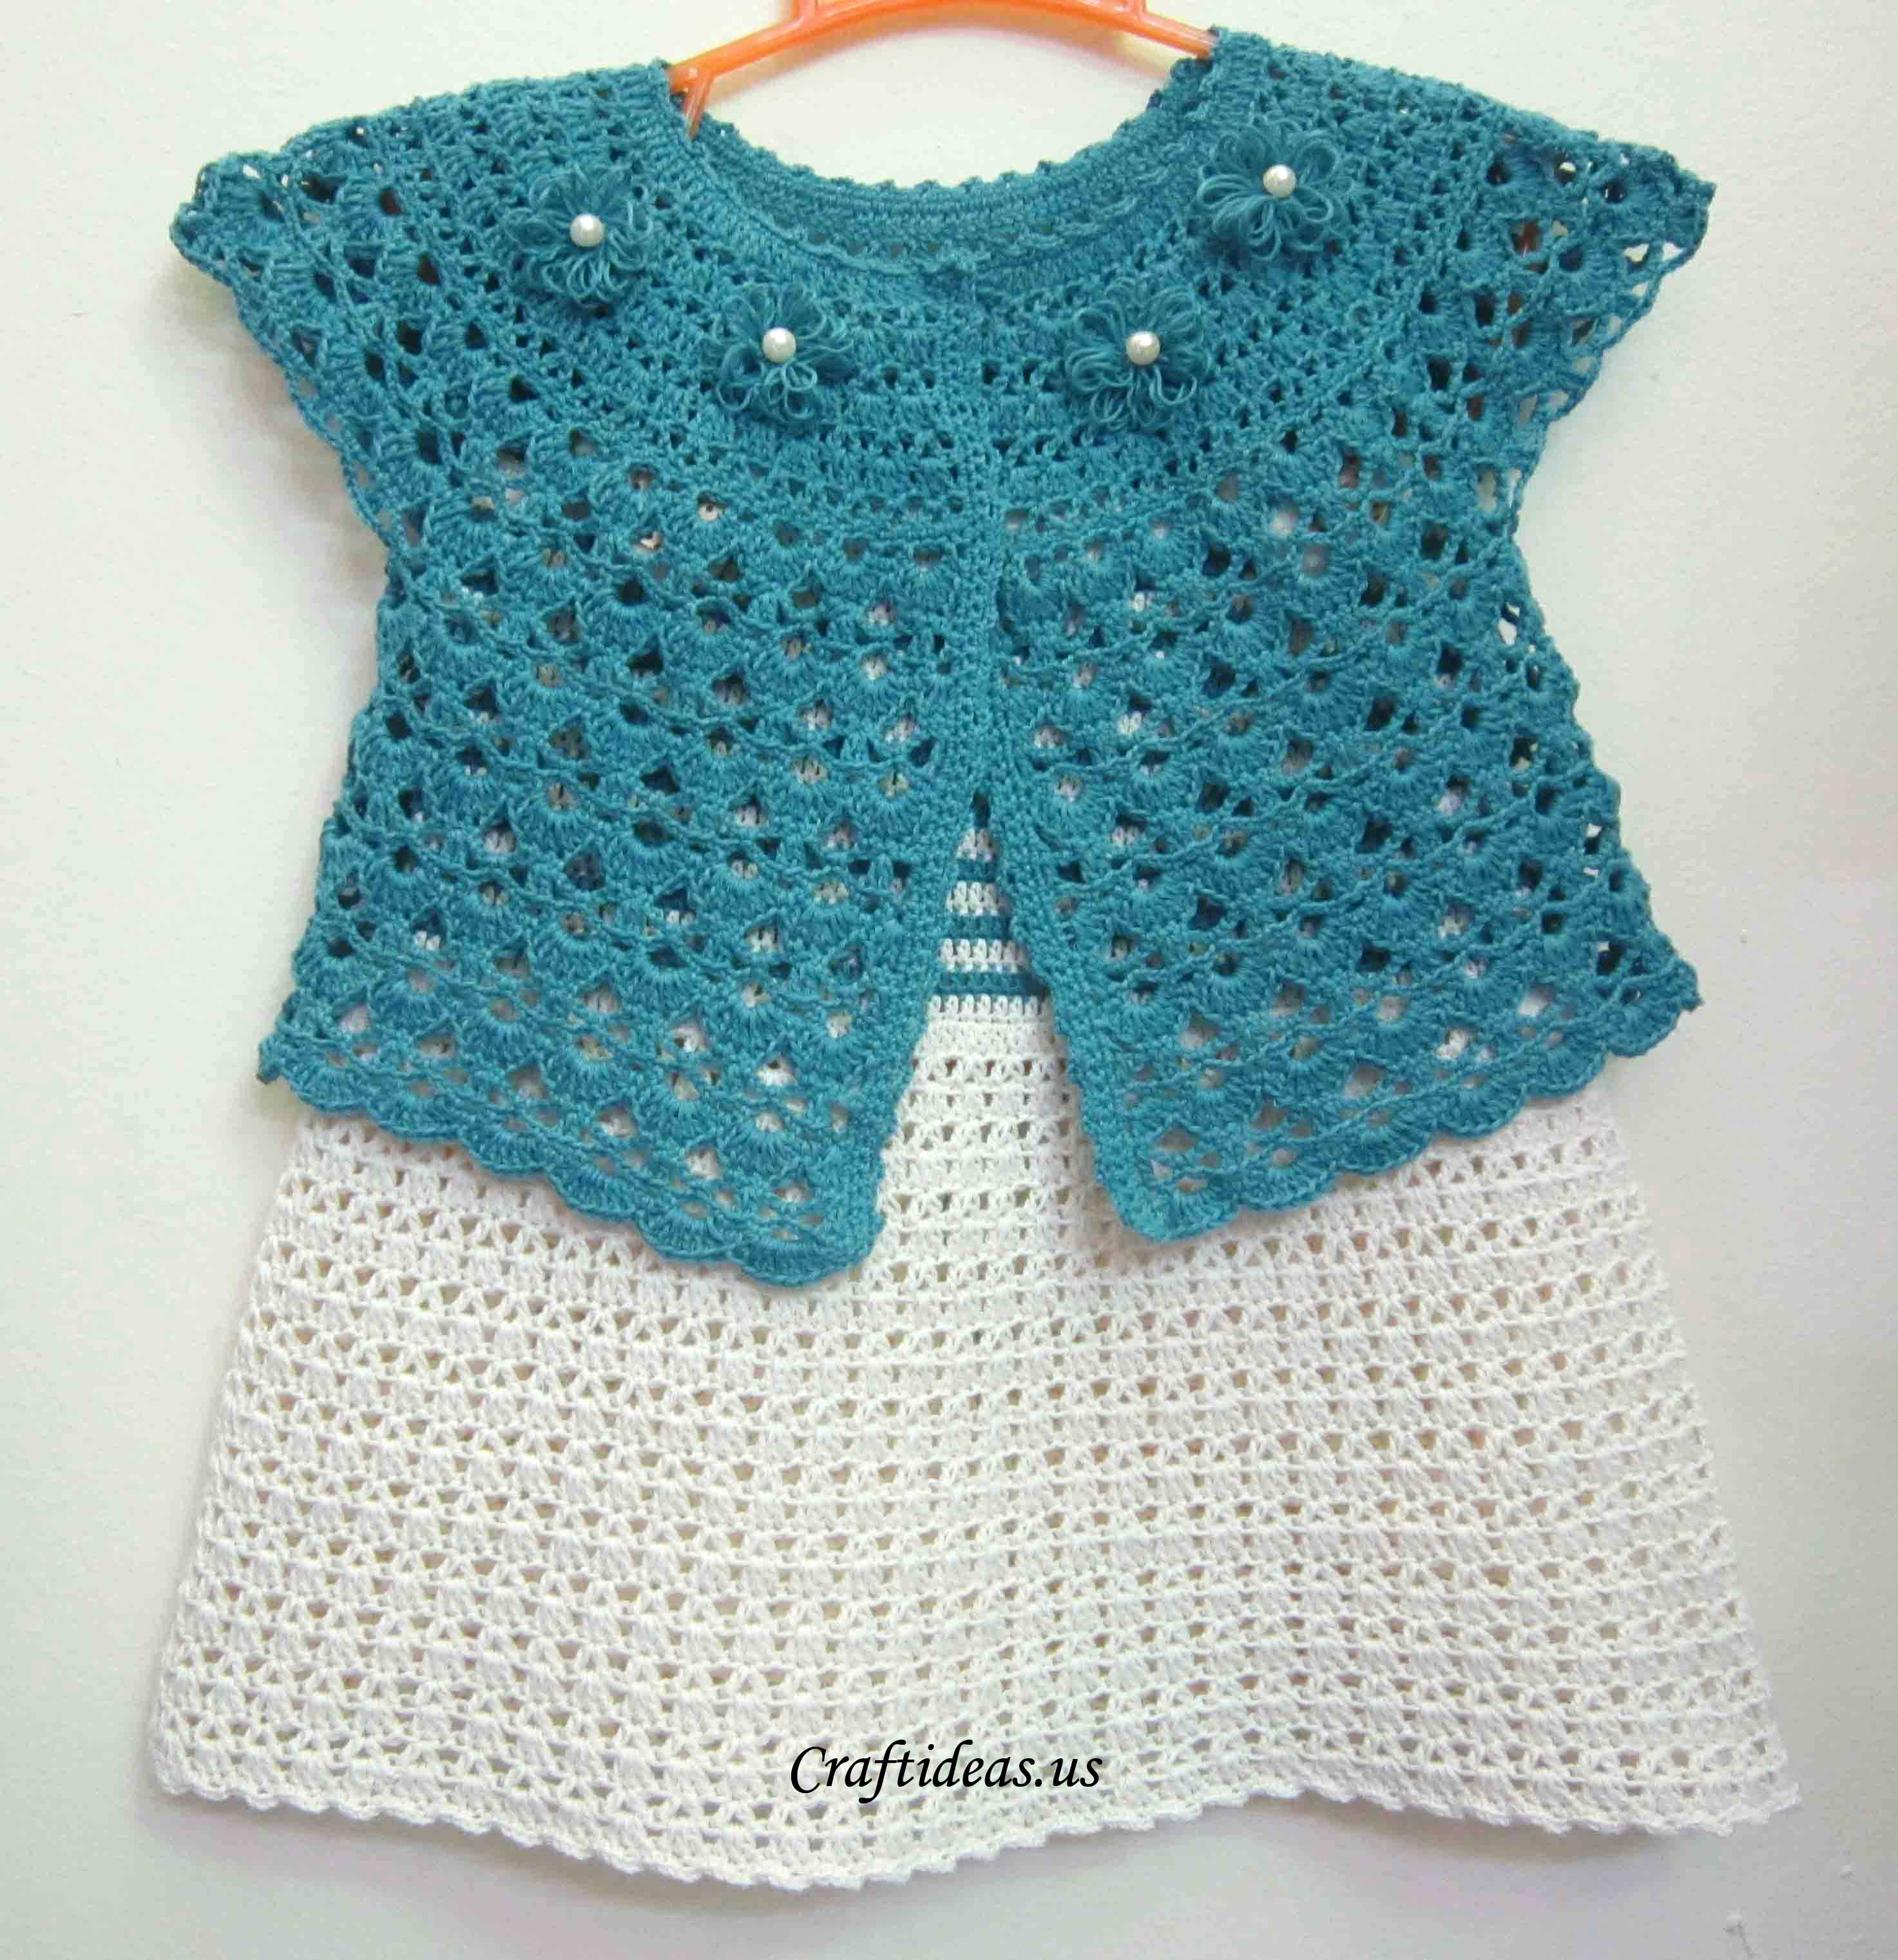 Crochet For Kids : Crafts for summer: crochet cute top dress for baby - Craft Ideas